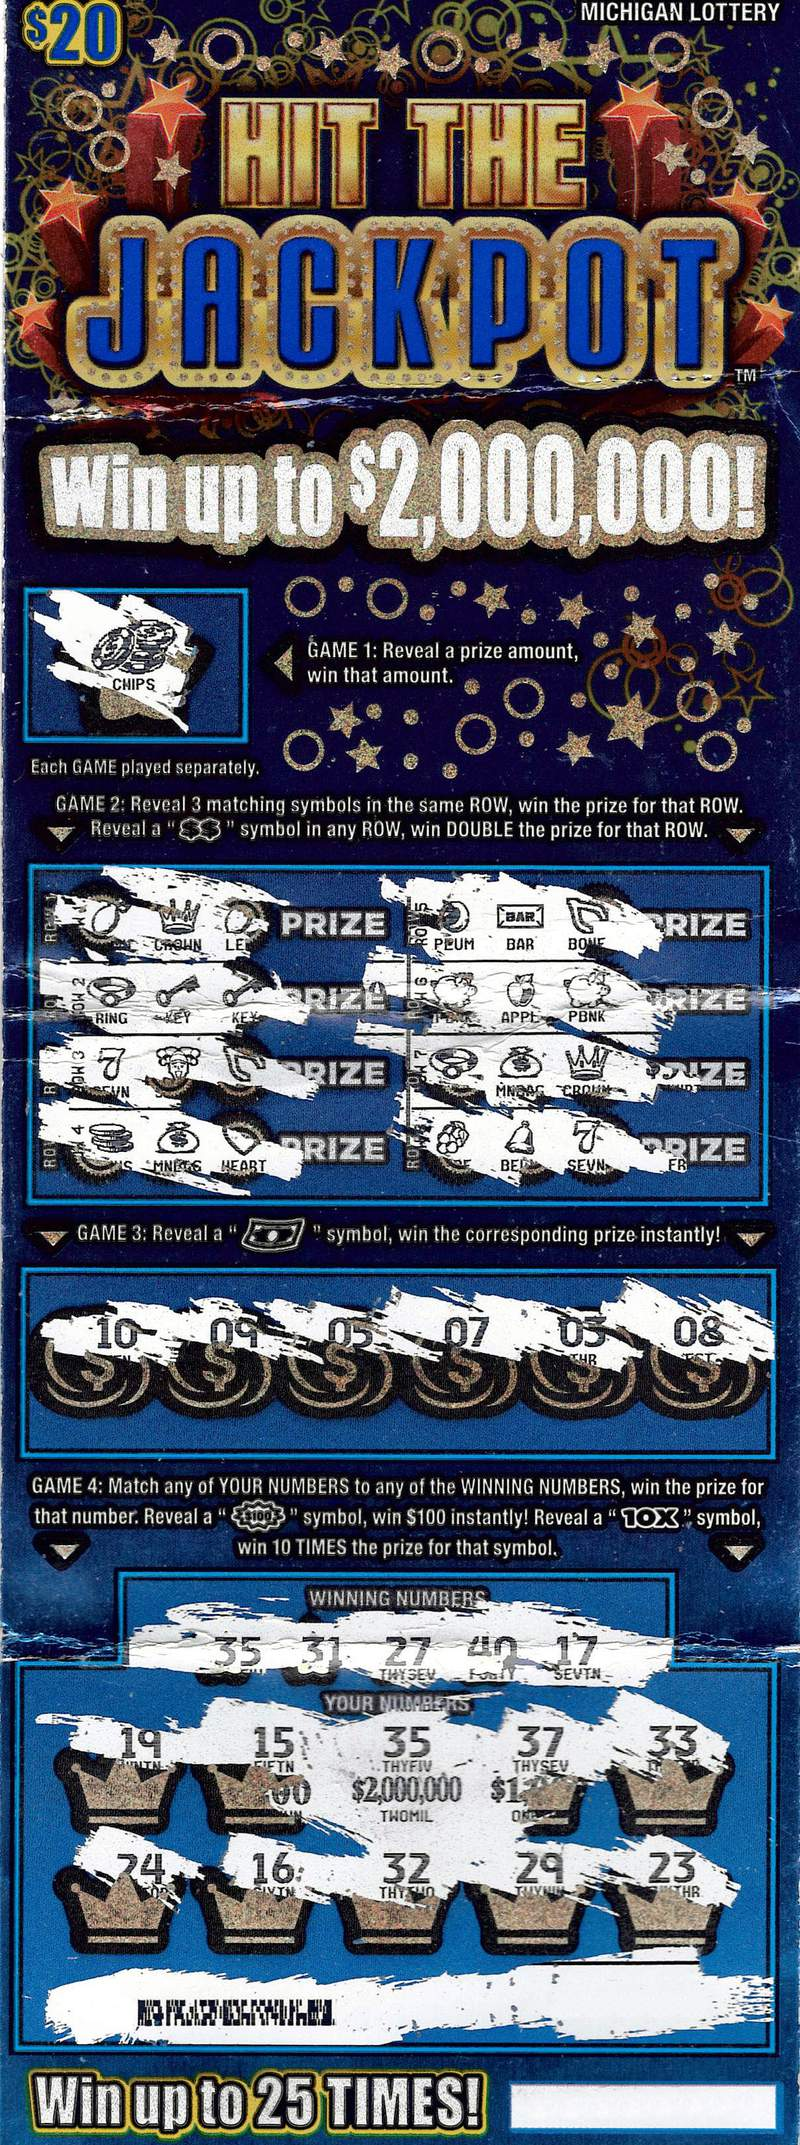 Oakland County Man Wins $2 Million Playing the Michigan Lottery's Hit the Jackpot Instant Game